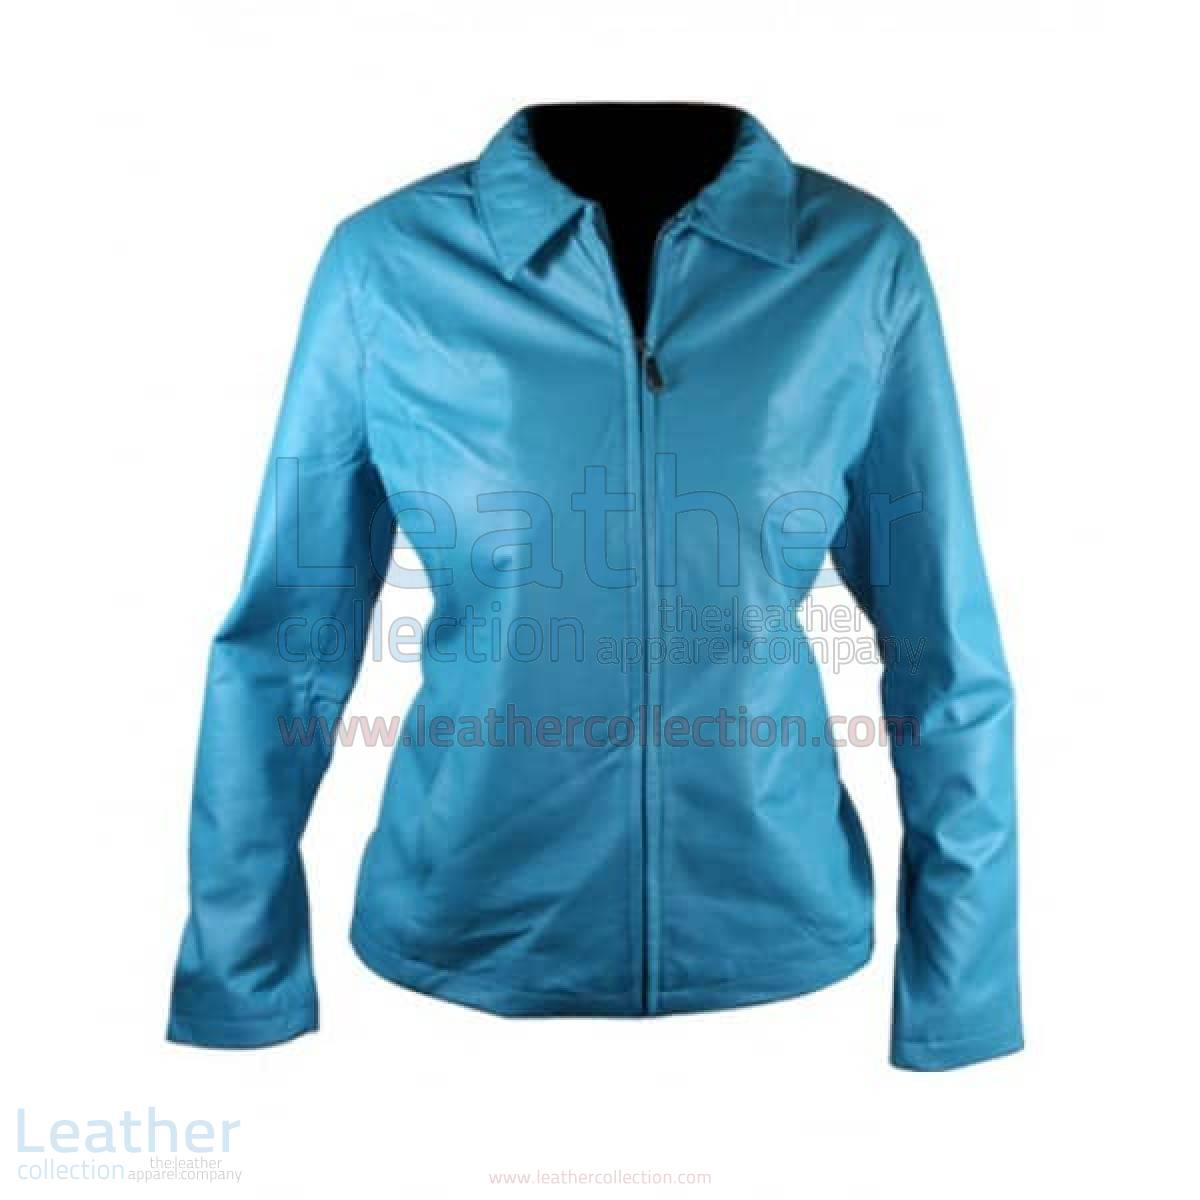 Classic Ladies Leather Jacket